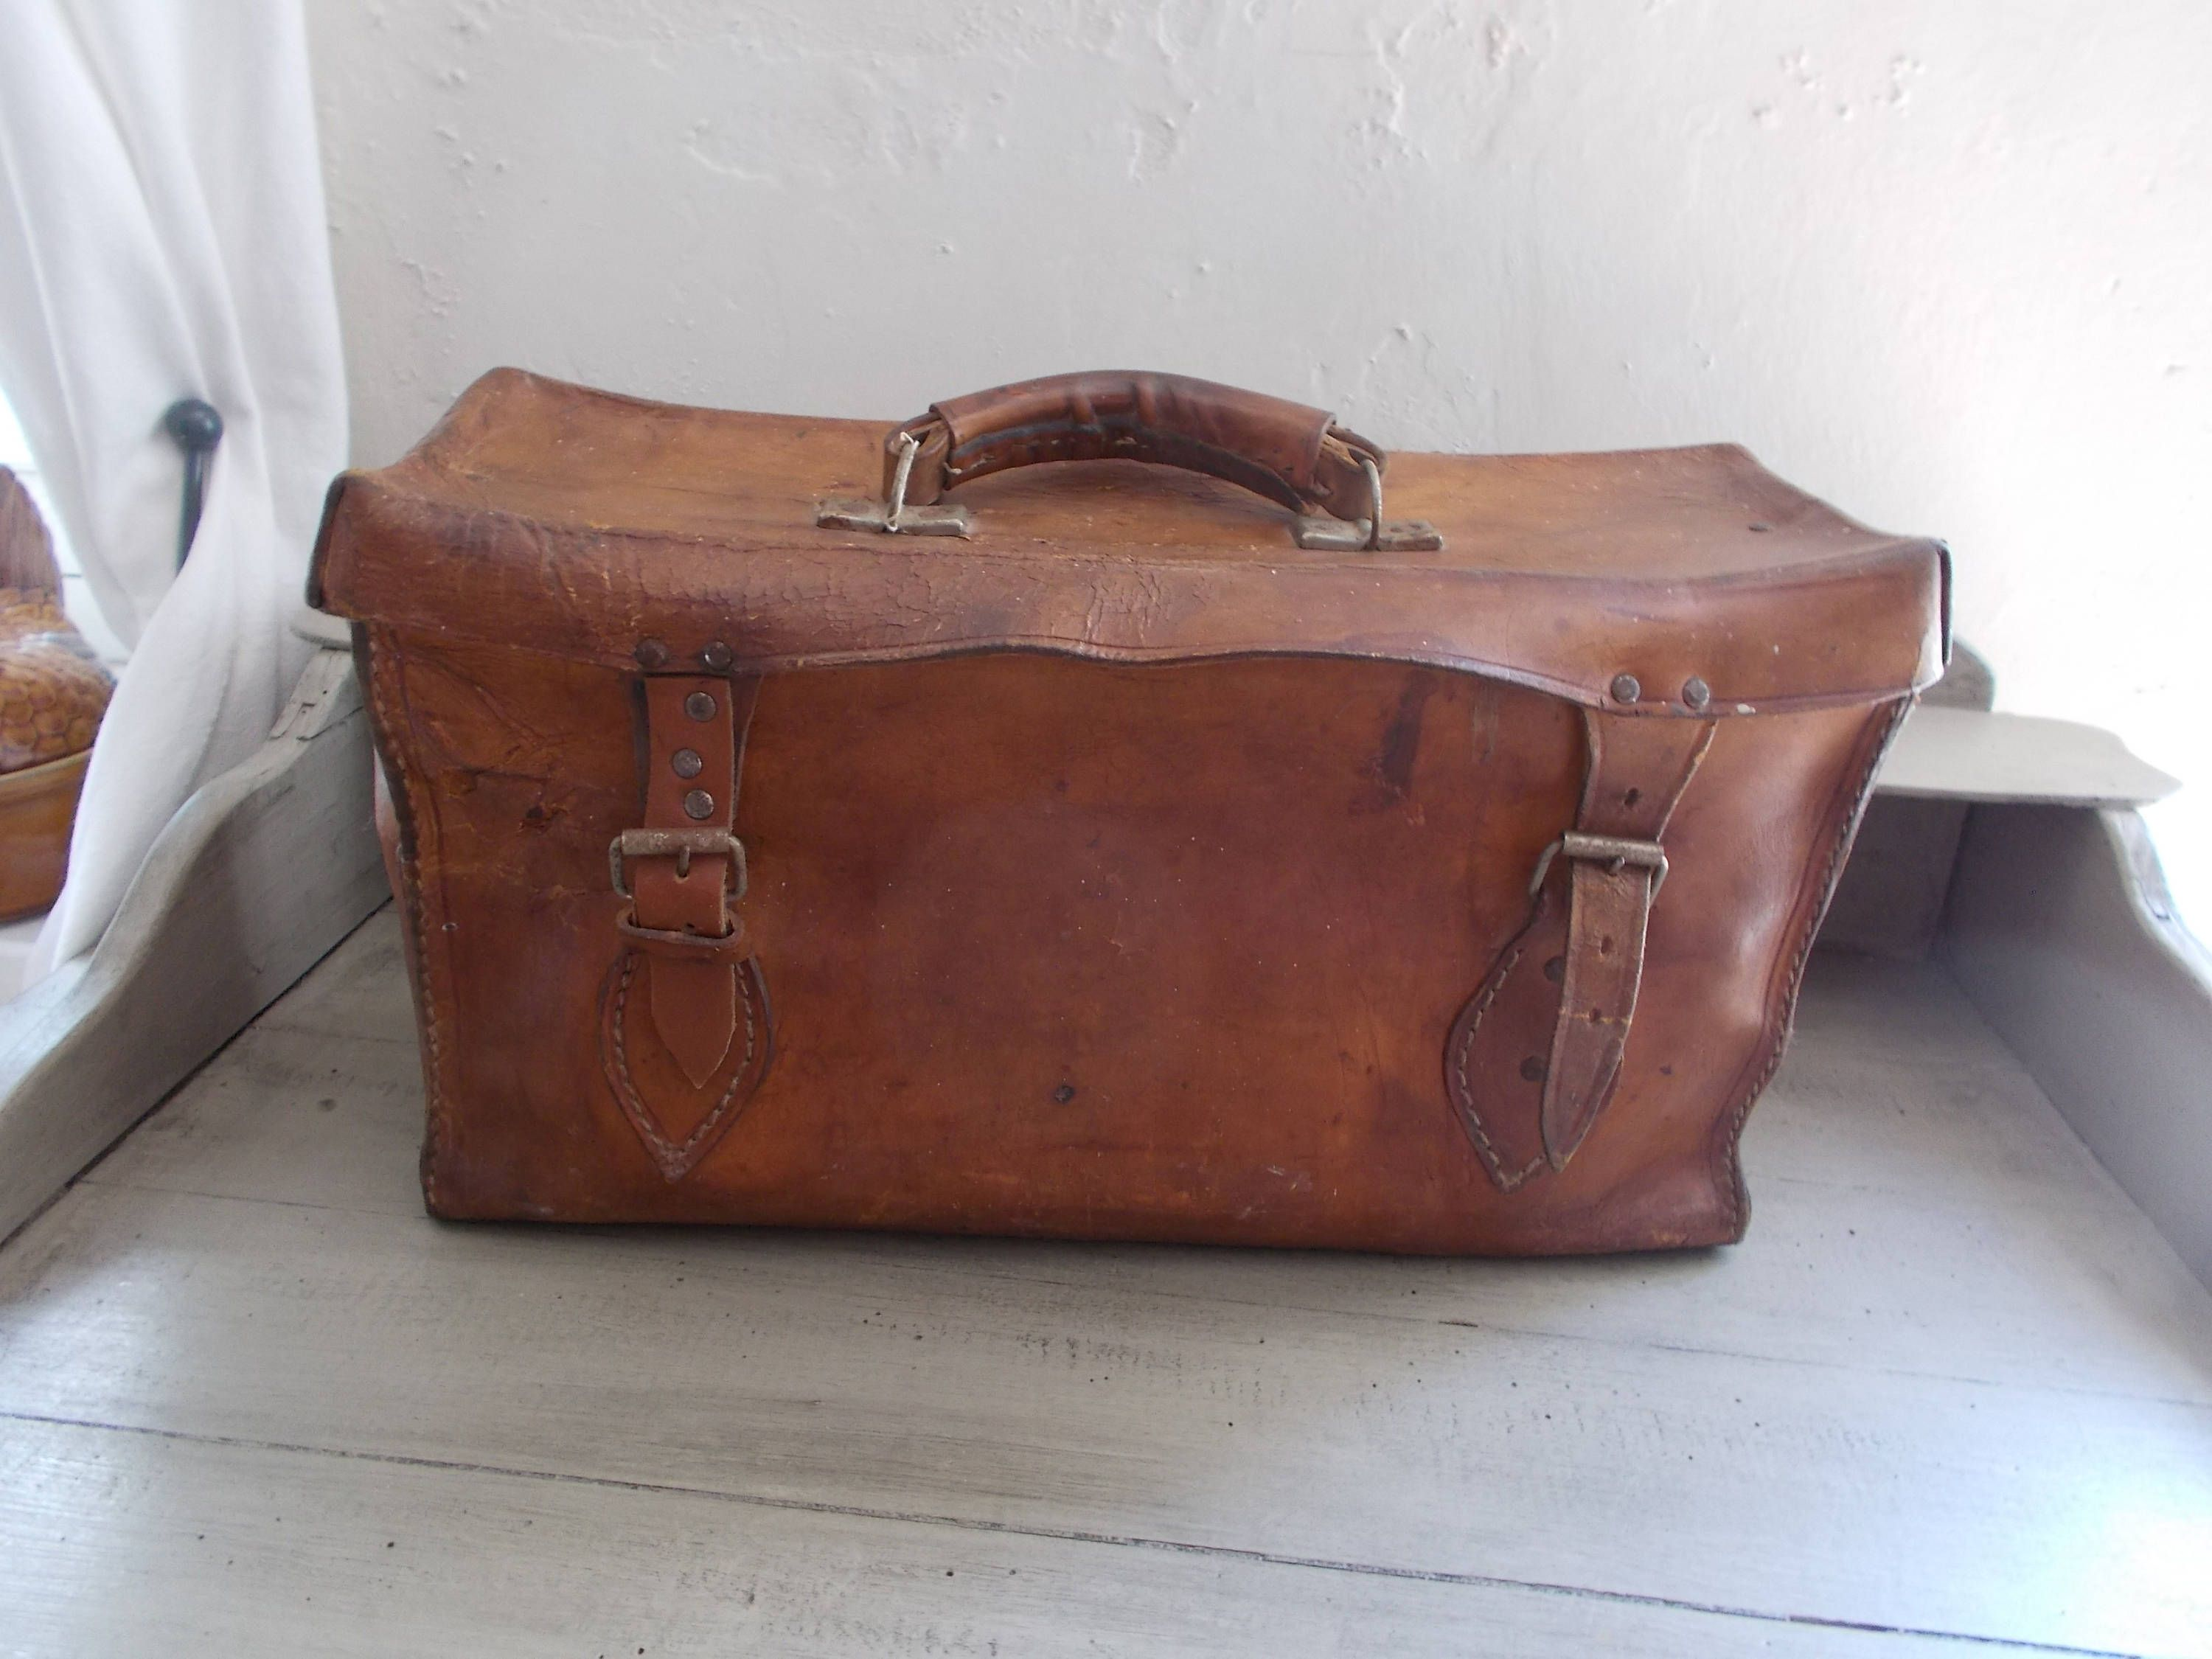 Vintage French Leather Work Army Motorcycle Bag Pannier Thick Leather Great Patina Metal Compartments Sturdy Handle Steam Punk By Thick Leather Bags Leather